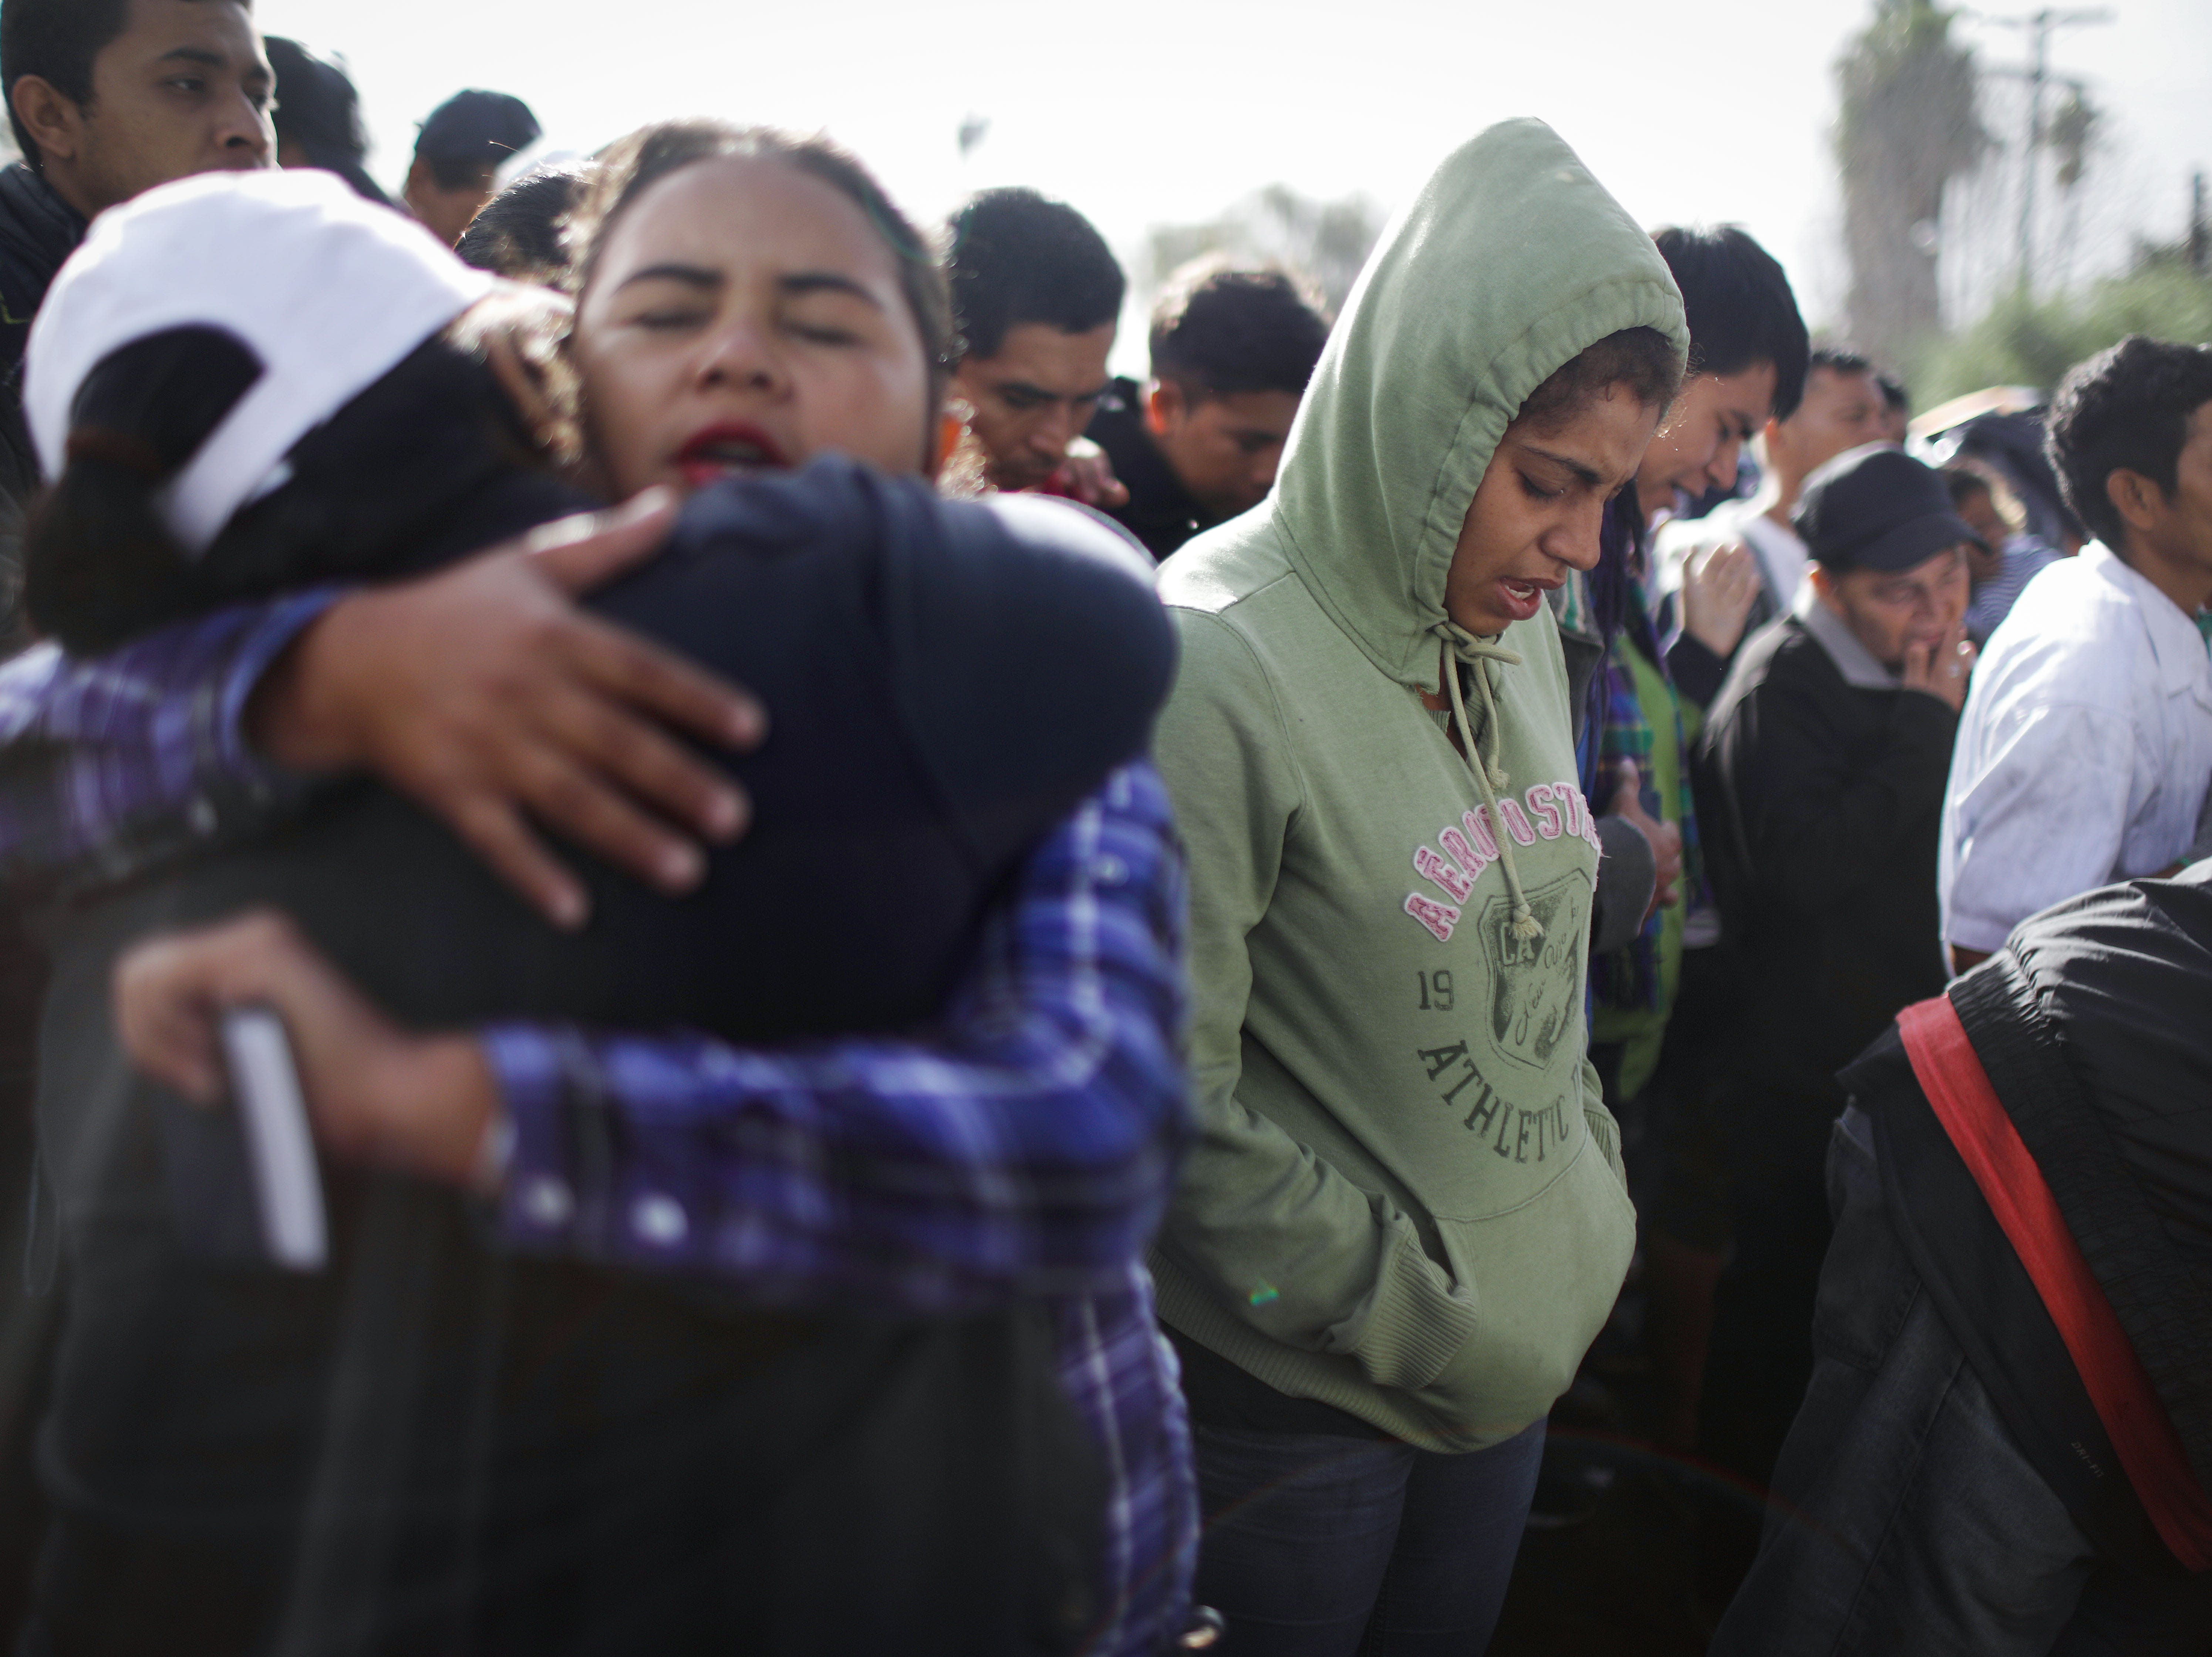 Migrants worship during a street prayer outside the Benito Juarez temporary shelter on Nov. 30, 2018 in Tijuana, Mexico.